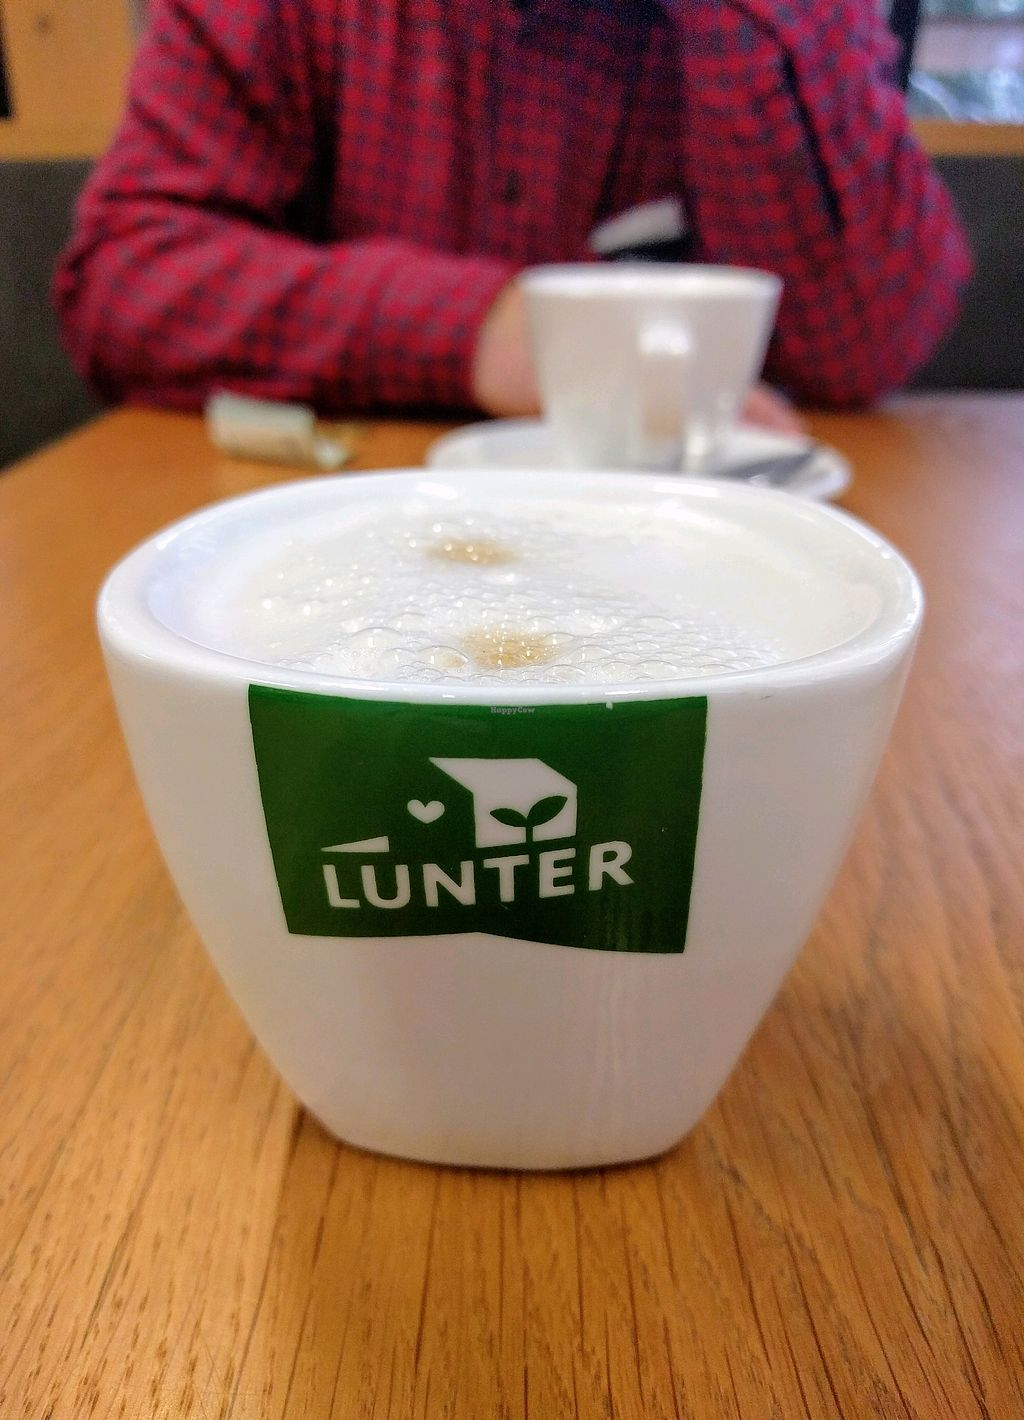 "Photo of Lunter Kuchyňa  by <a href=""/members/profile/CoconutRice"">CoconutRice</a> <br/>Latte with soy milk <br/> February 7, 2018  - <a href='/contact/abuse/image/28557/356162'>Report</a>"